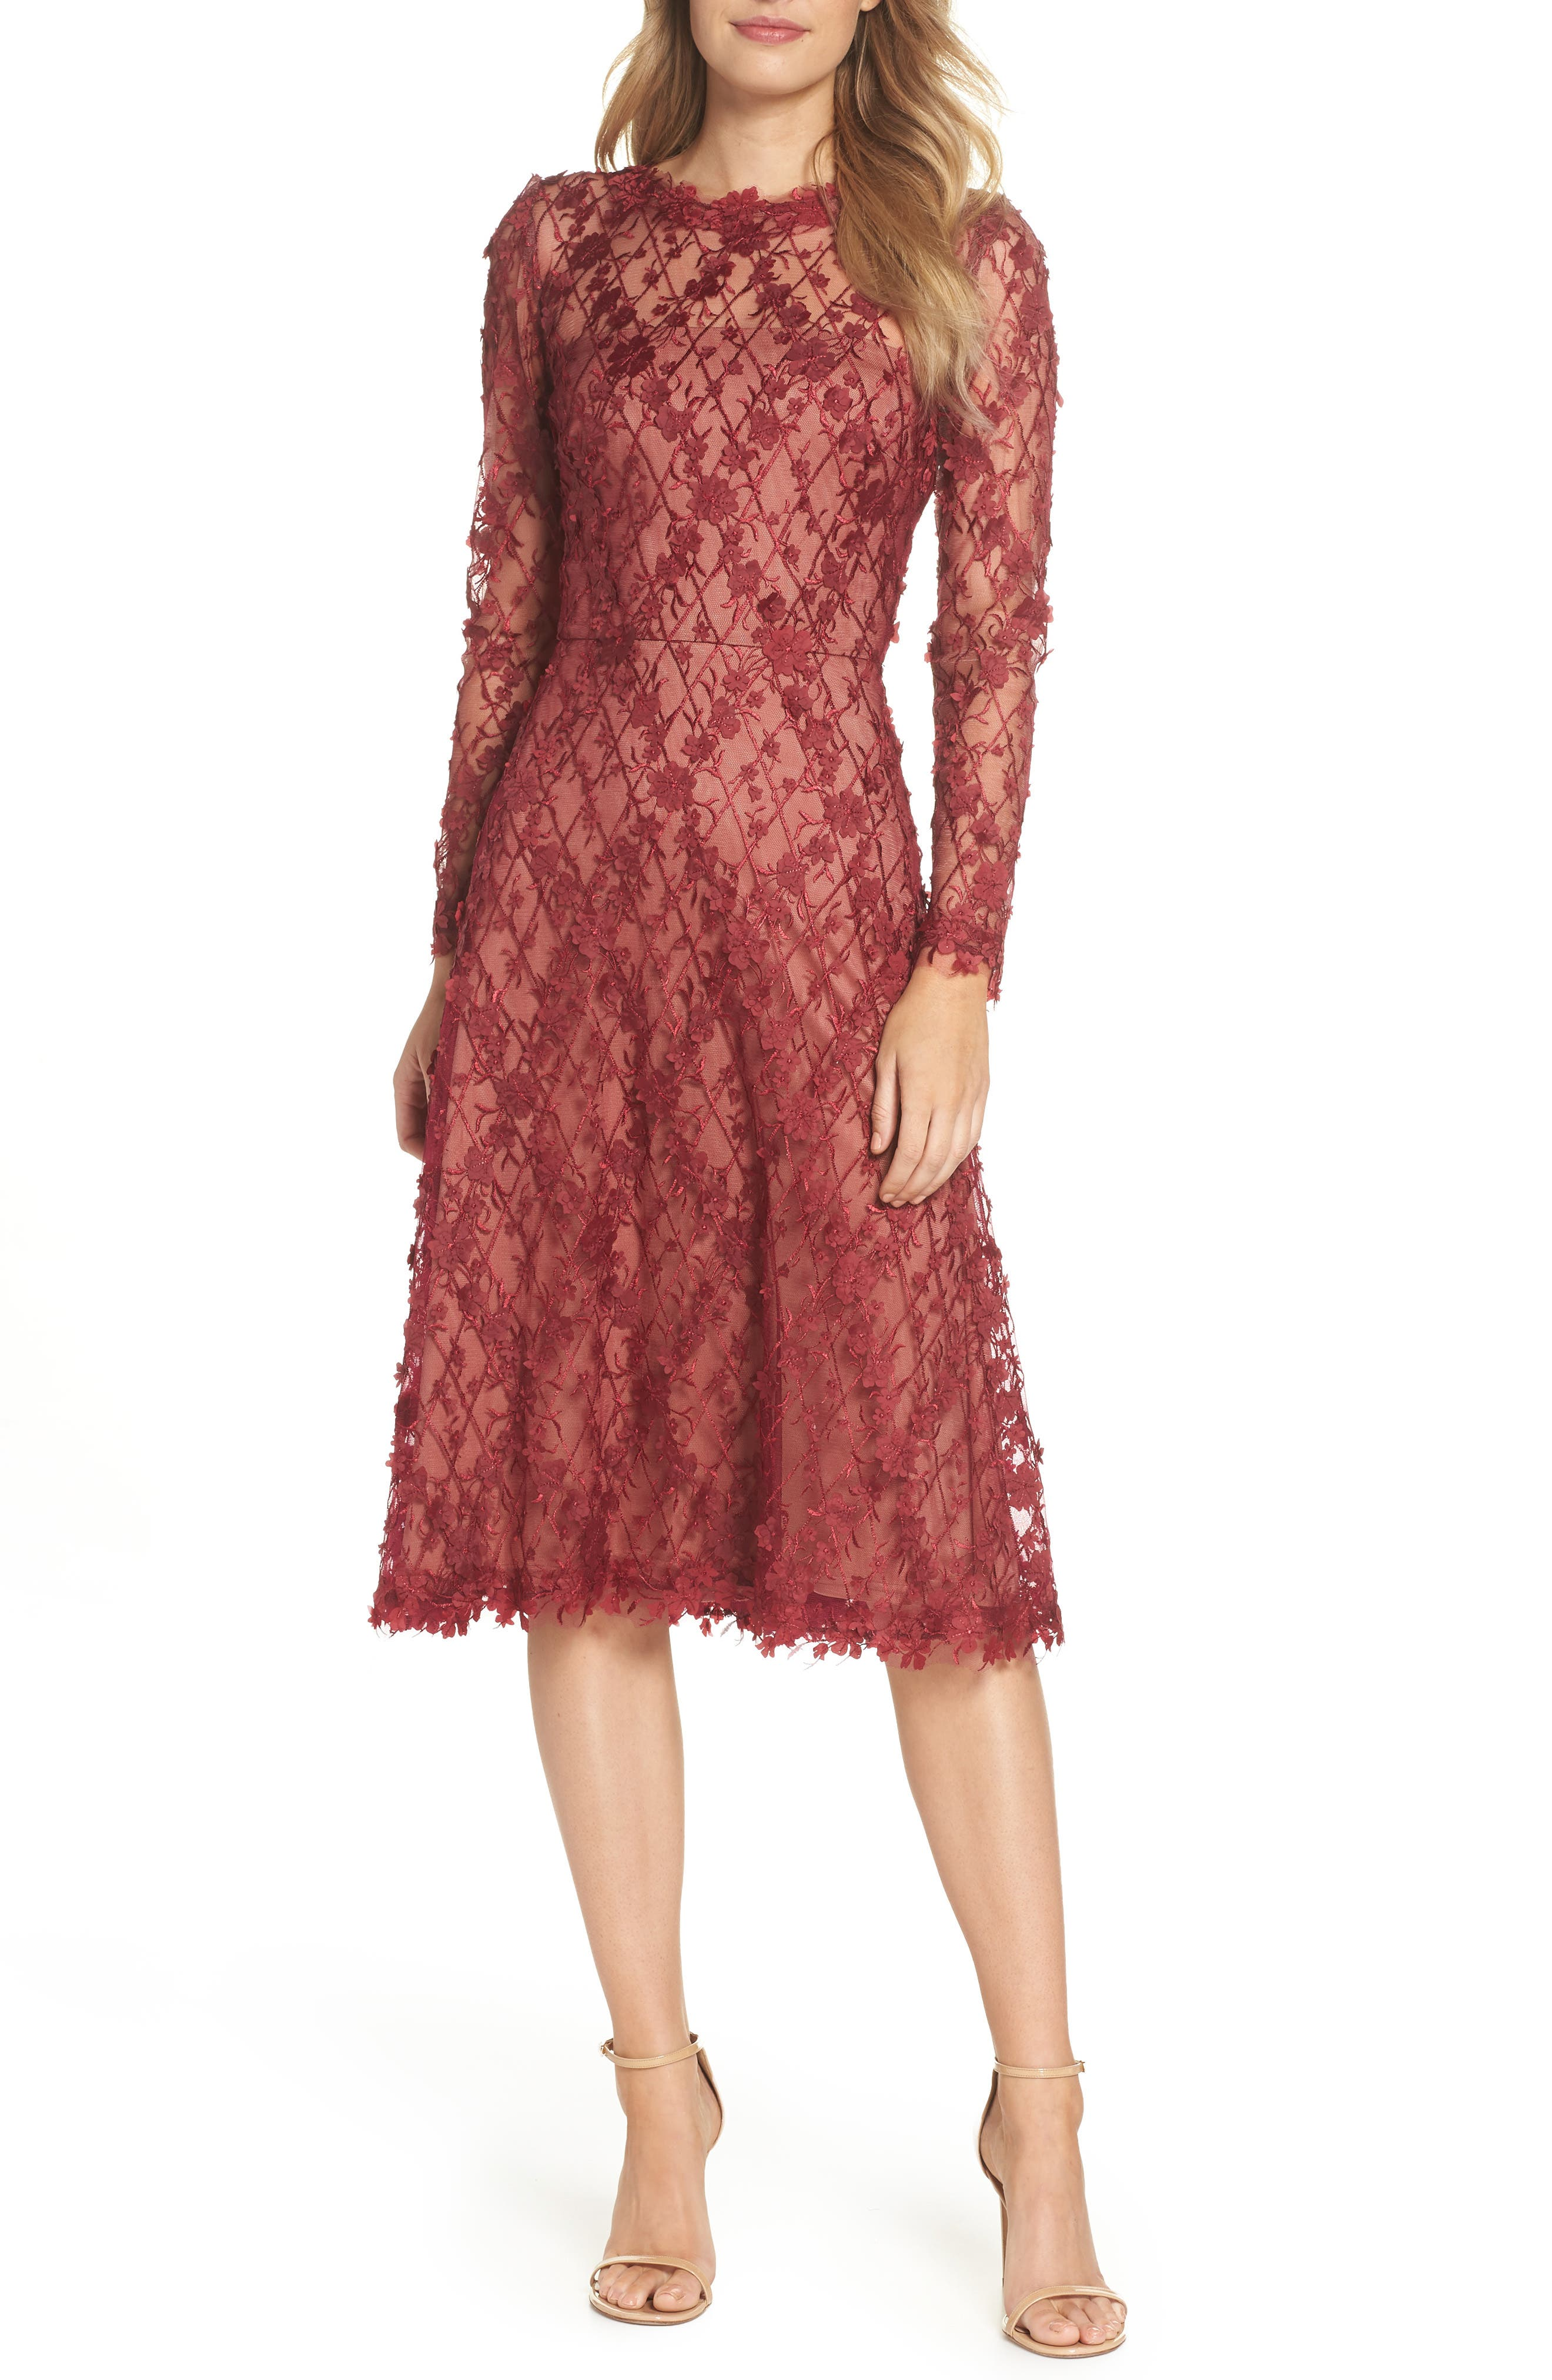 3D Flowers Lace Dress,                         Main,                         color, Rosewood/ Nude